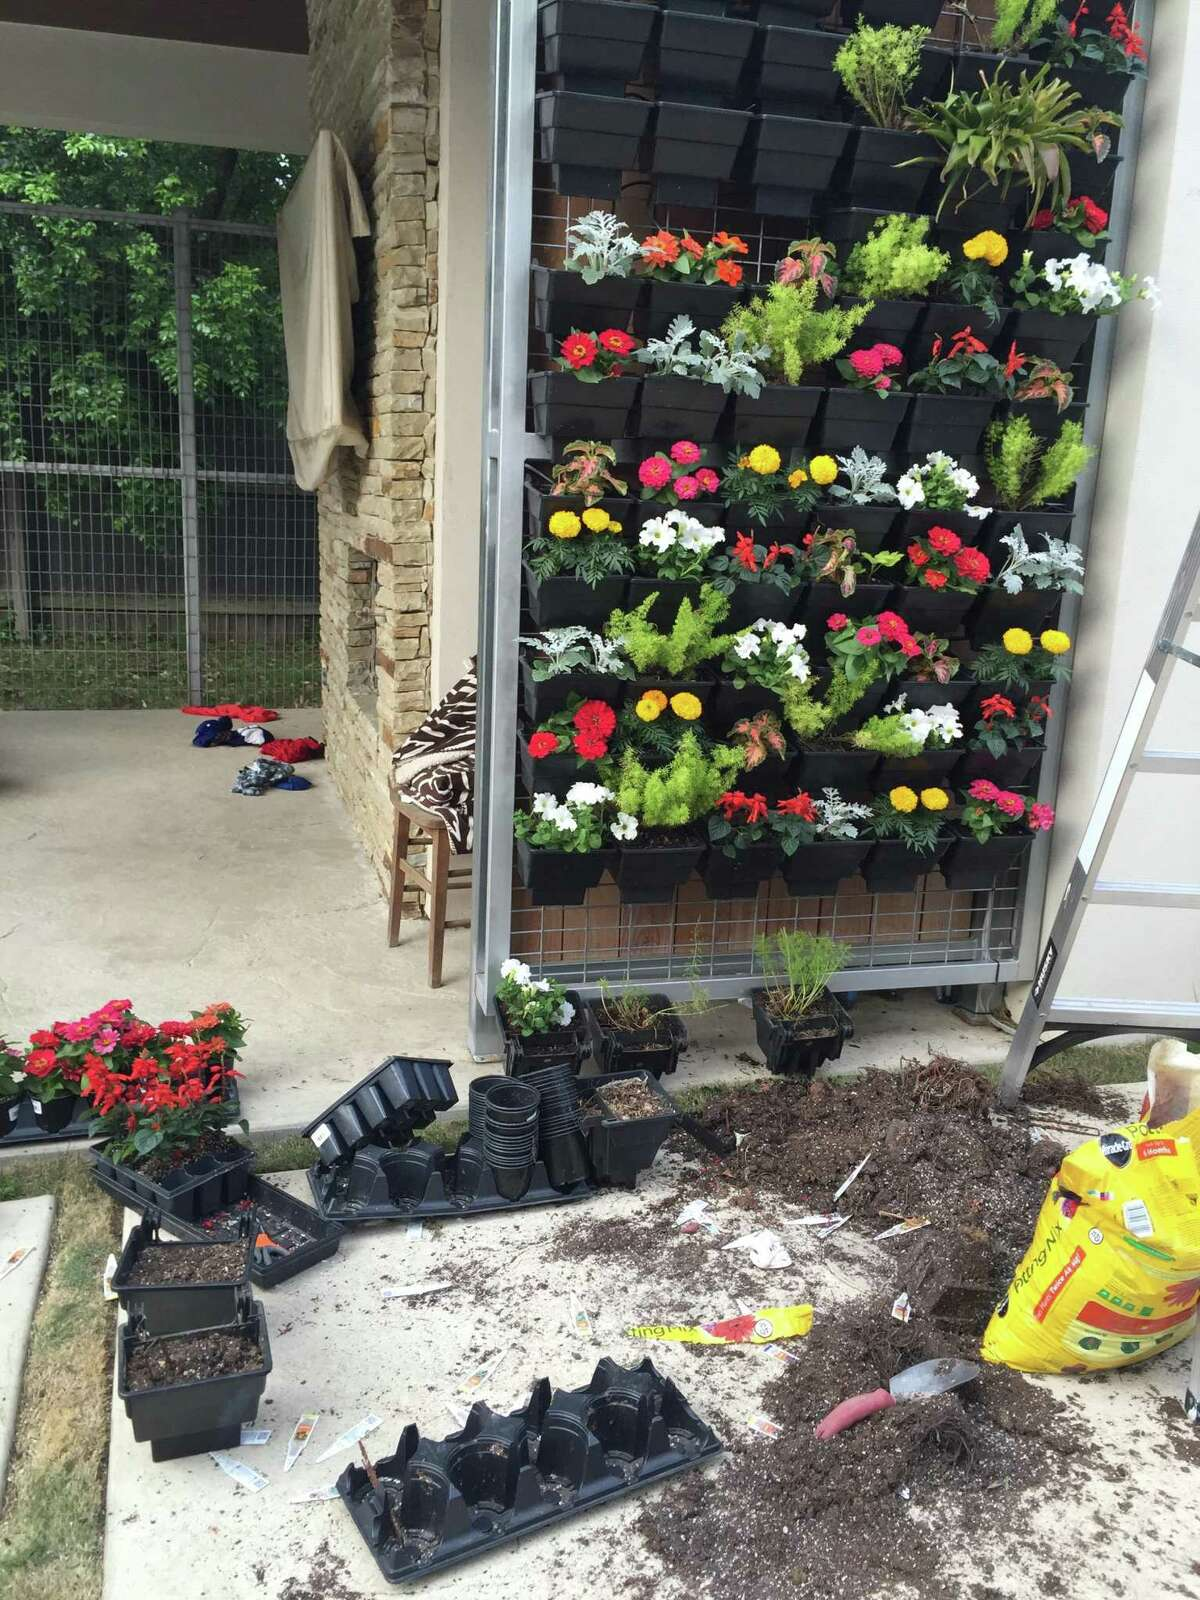 Scott and Sherolene Barr maintain their outdoor green wall themselves, replacing spent flowers as necessary.